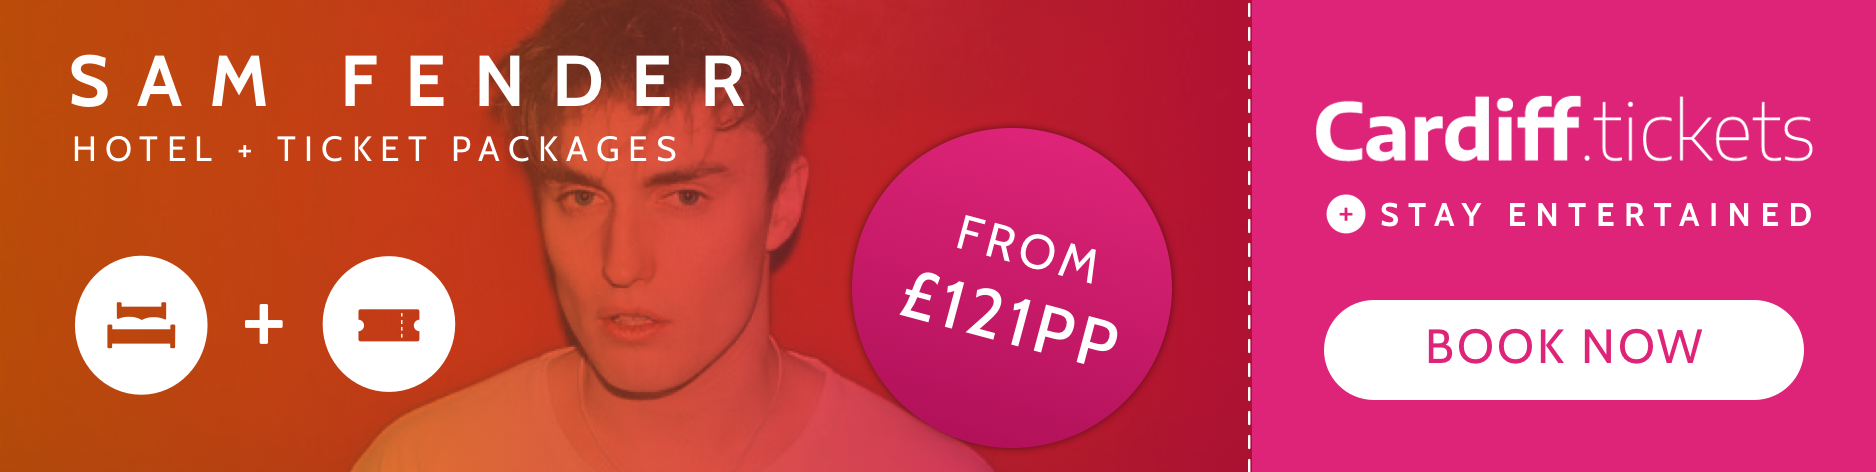 Sam Fender tickets and hotel package